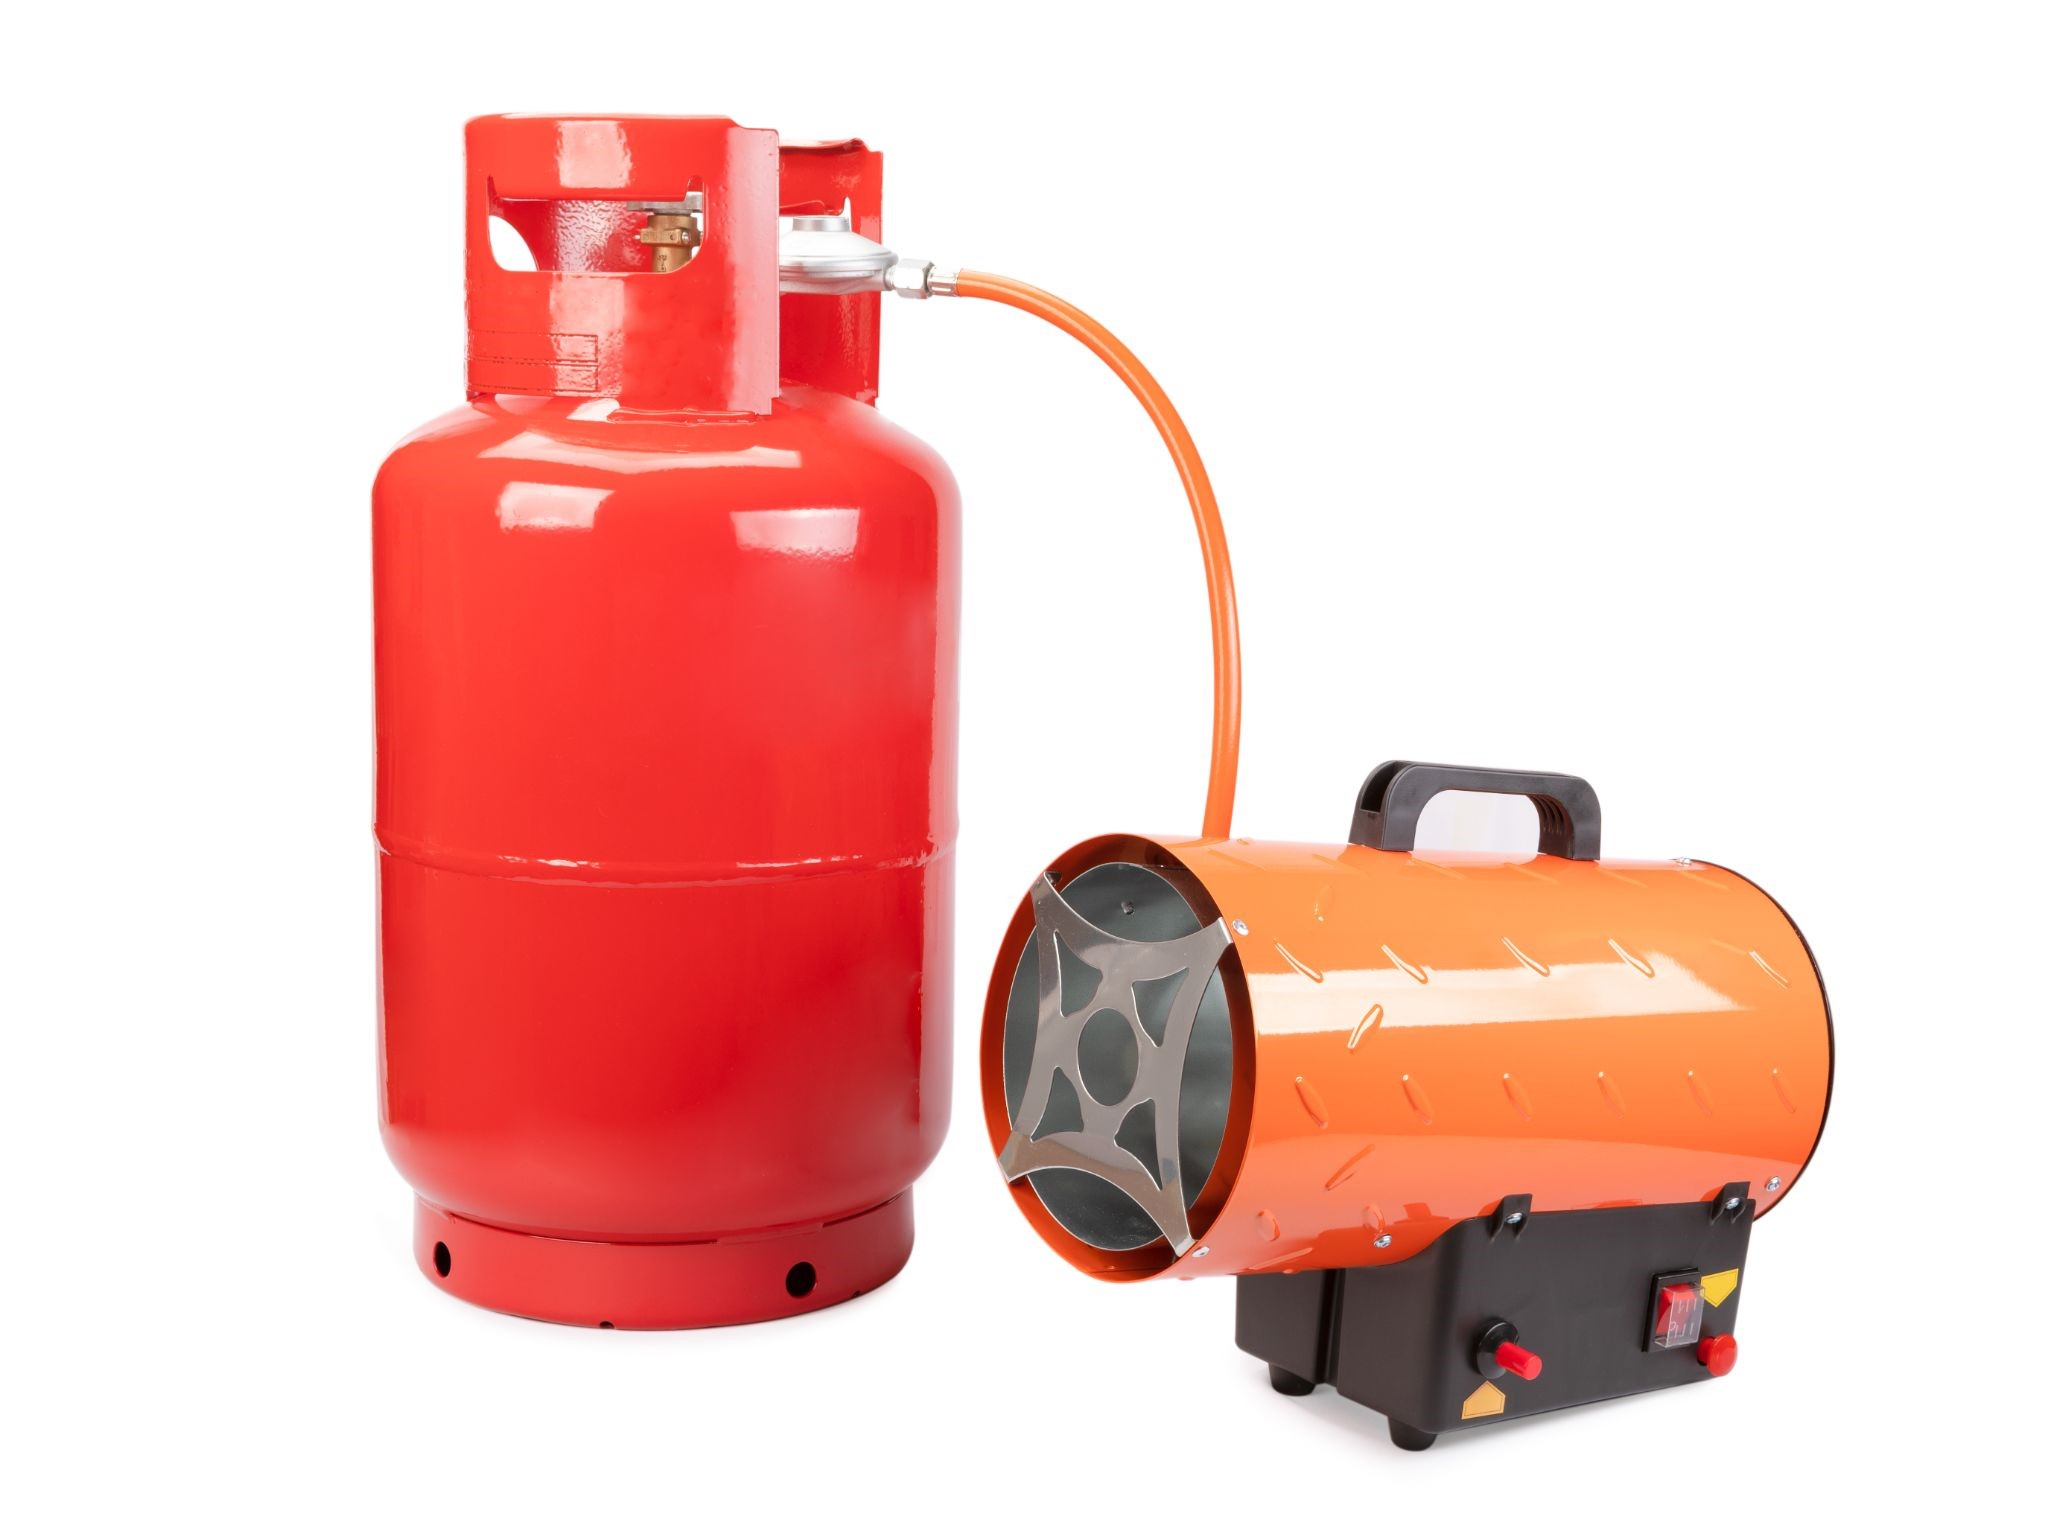 a red LPG tank connected to the portable heater